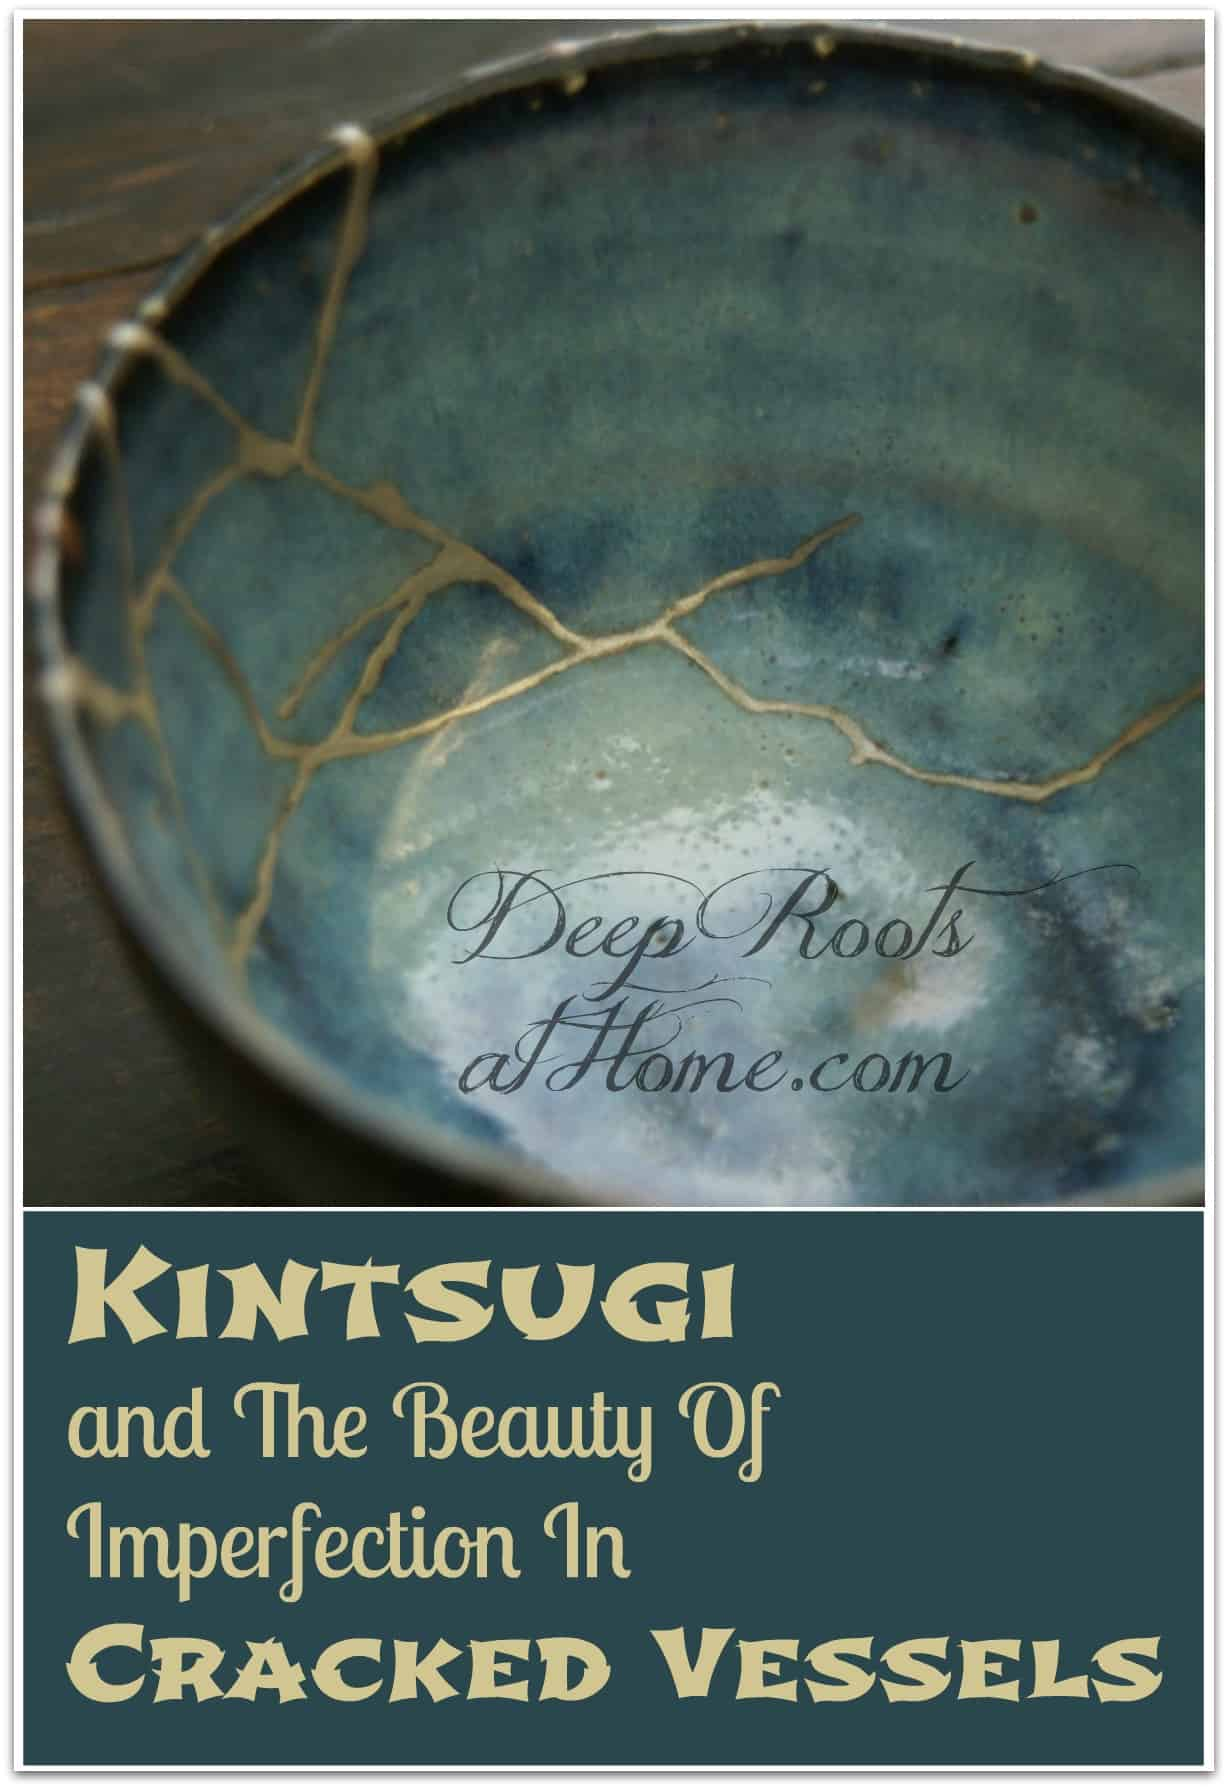 Kintsugi and The Beauty Of Imperfection In Cracked Vessels. A gold-repaired crack in turquoise pottery bowl